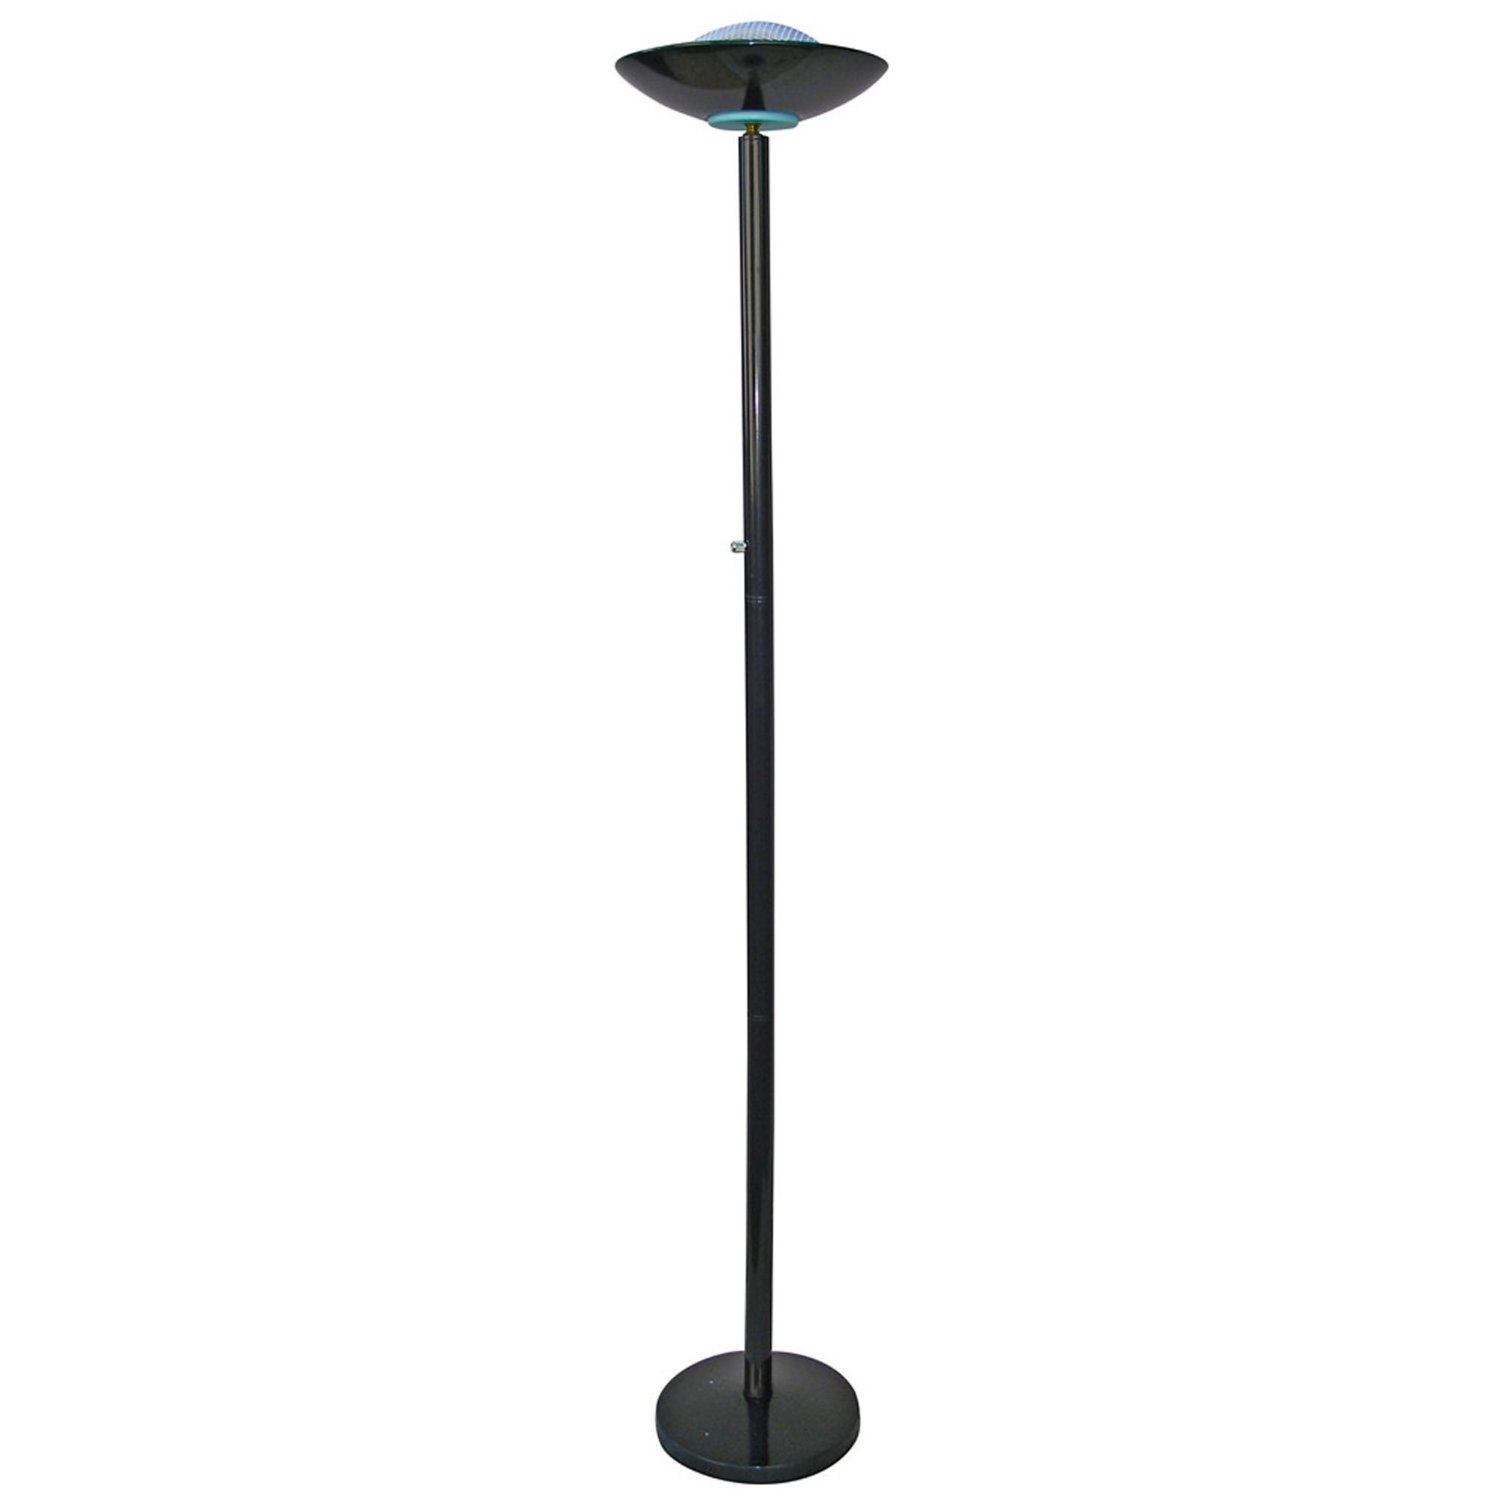 stand up lamps photo - 1